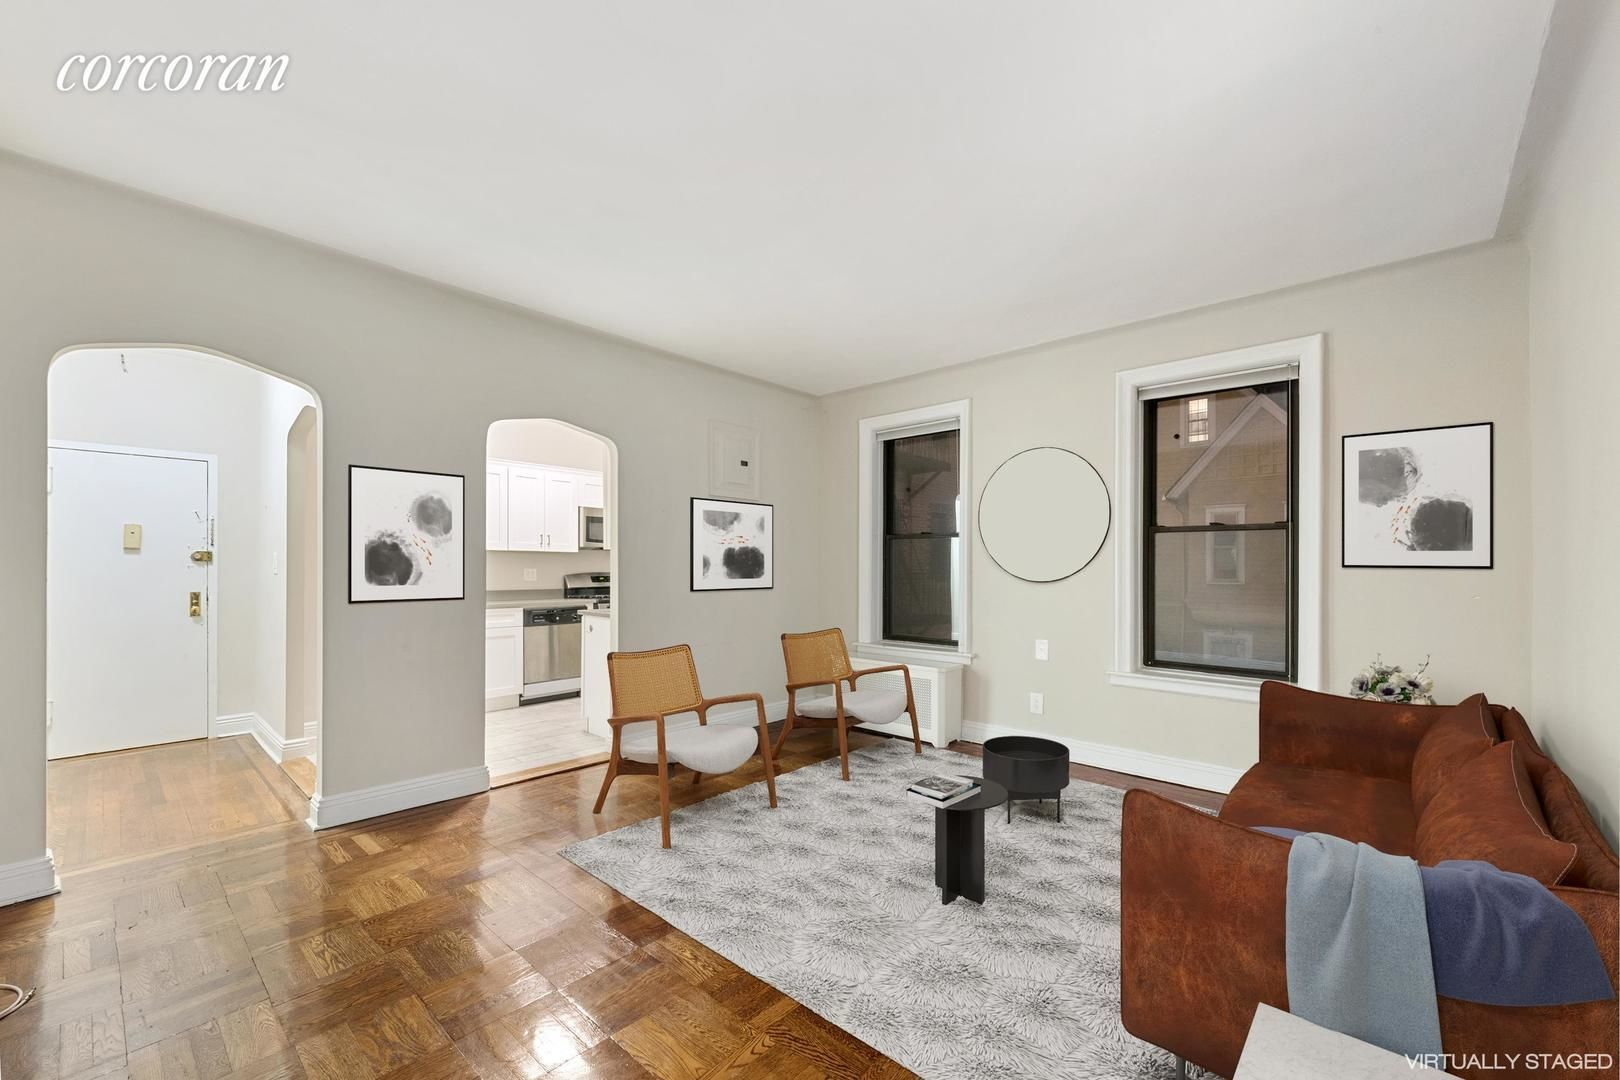 Apartment for sale at 80 Winthrop Street, Apt A2